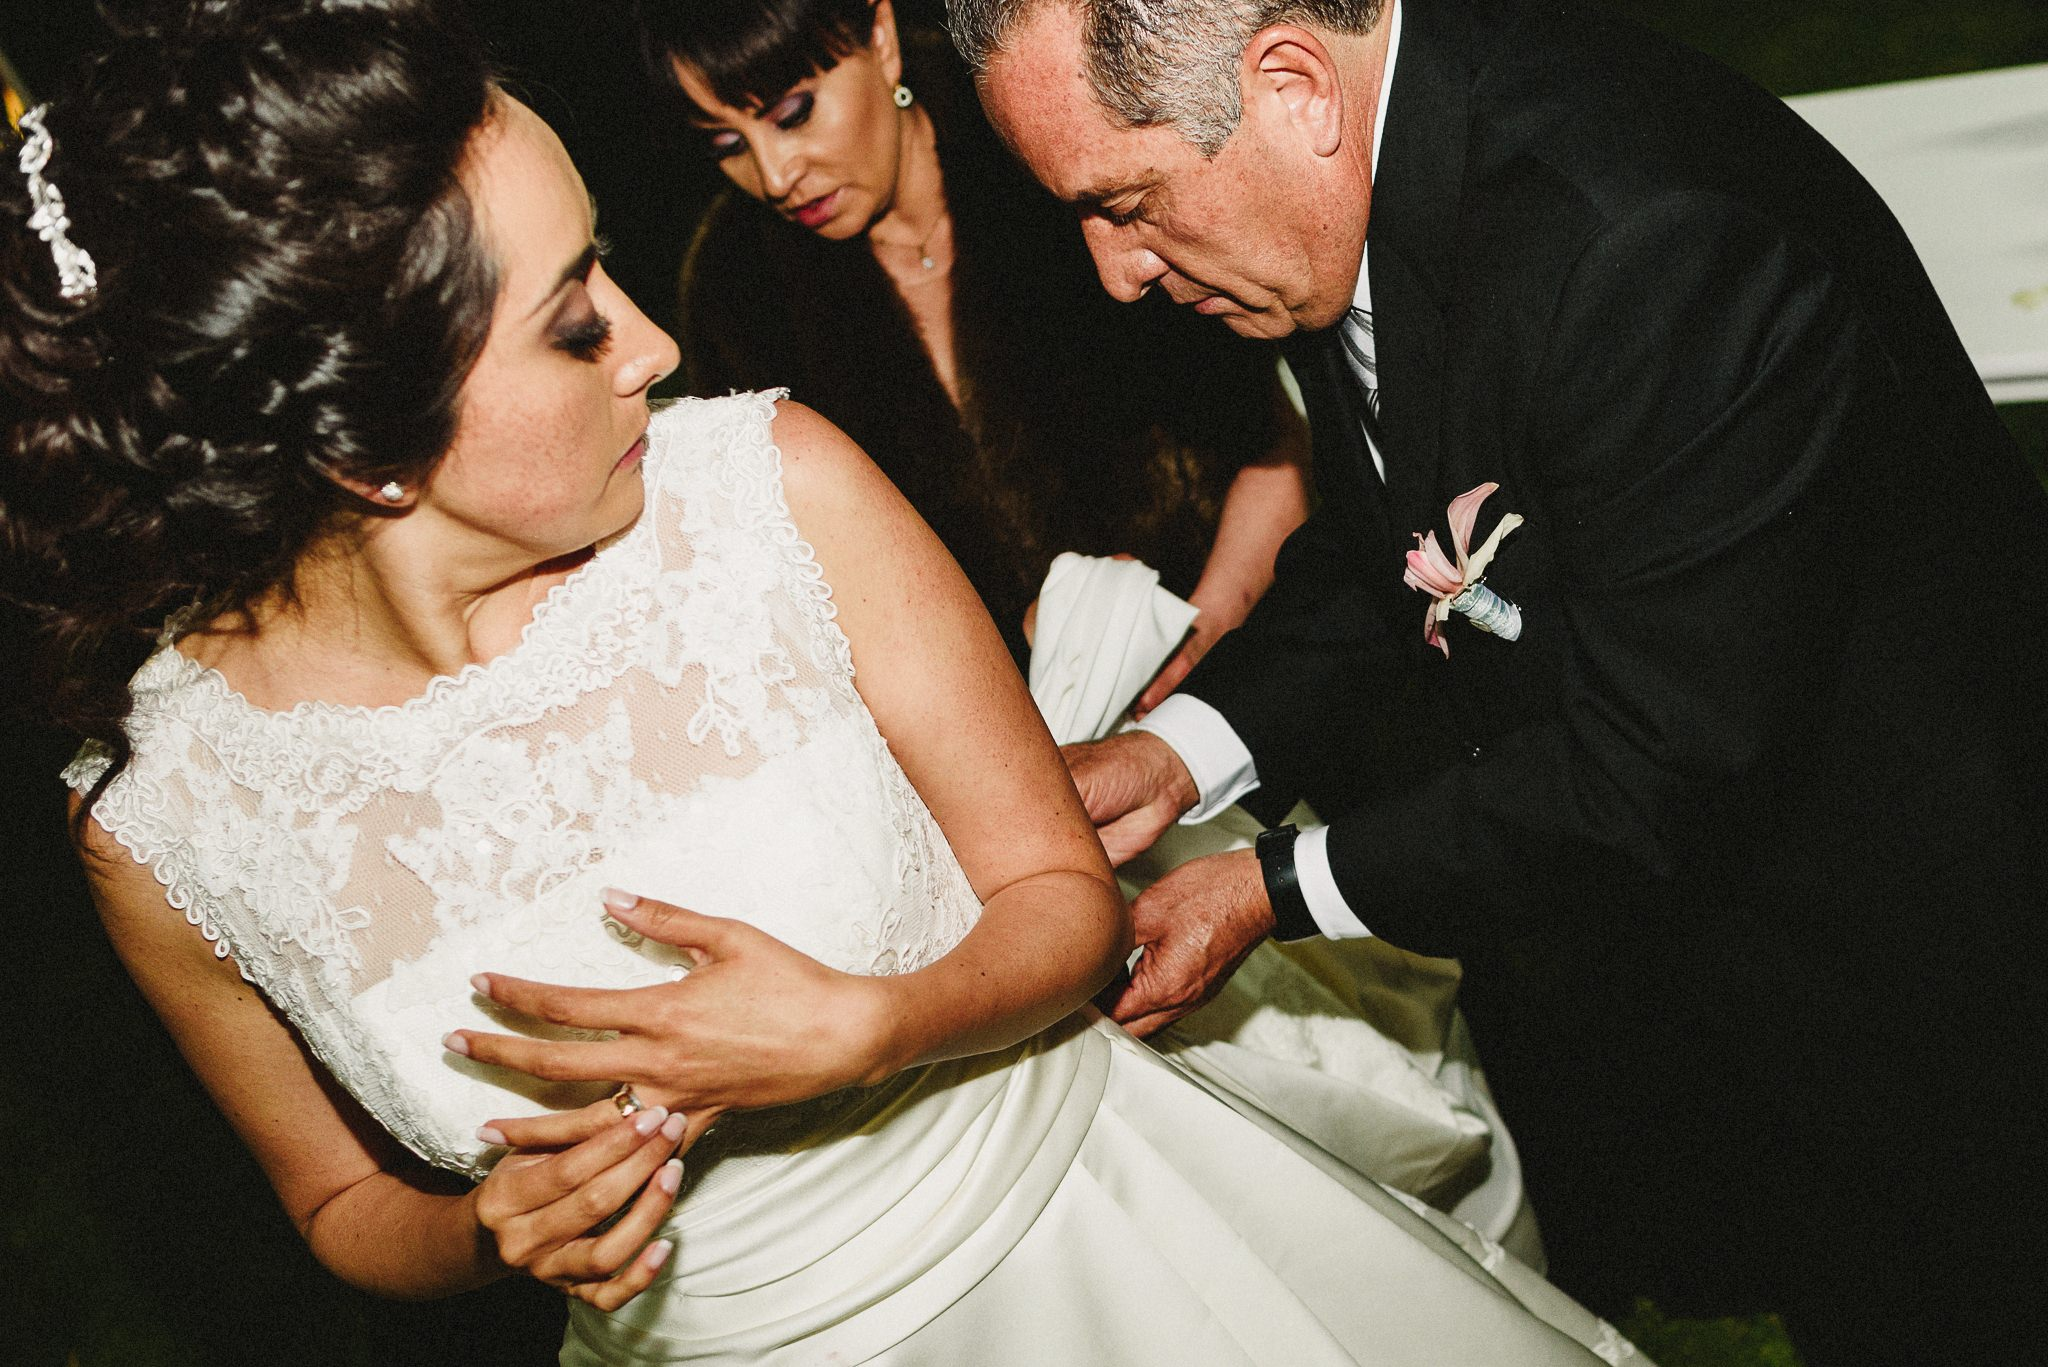 Wedding-Boda-Tulancingo-Hidalgo-Salon-Essenzia-Luis-Houdin-43-film